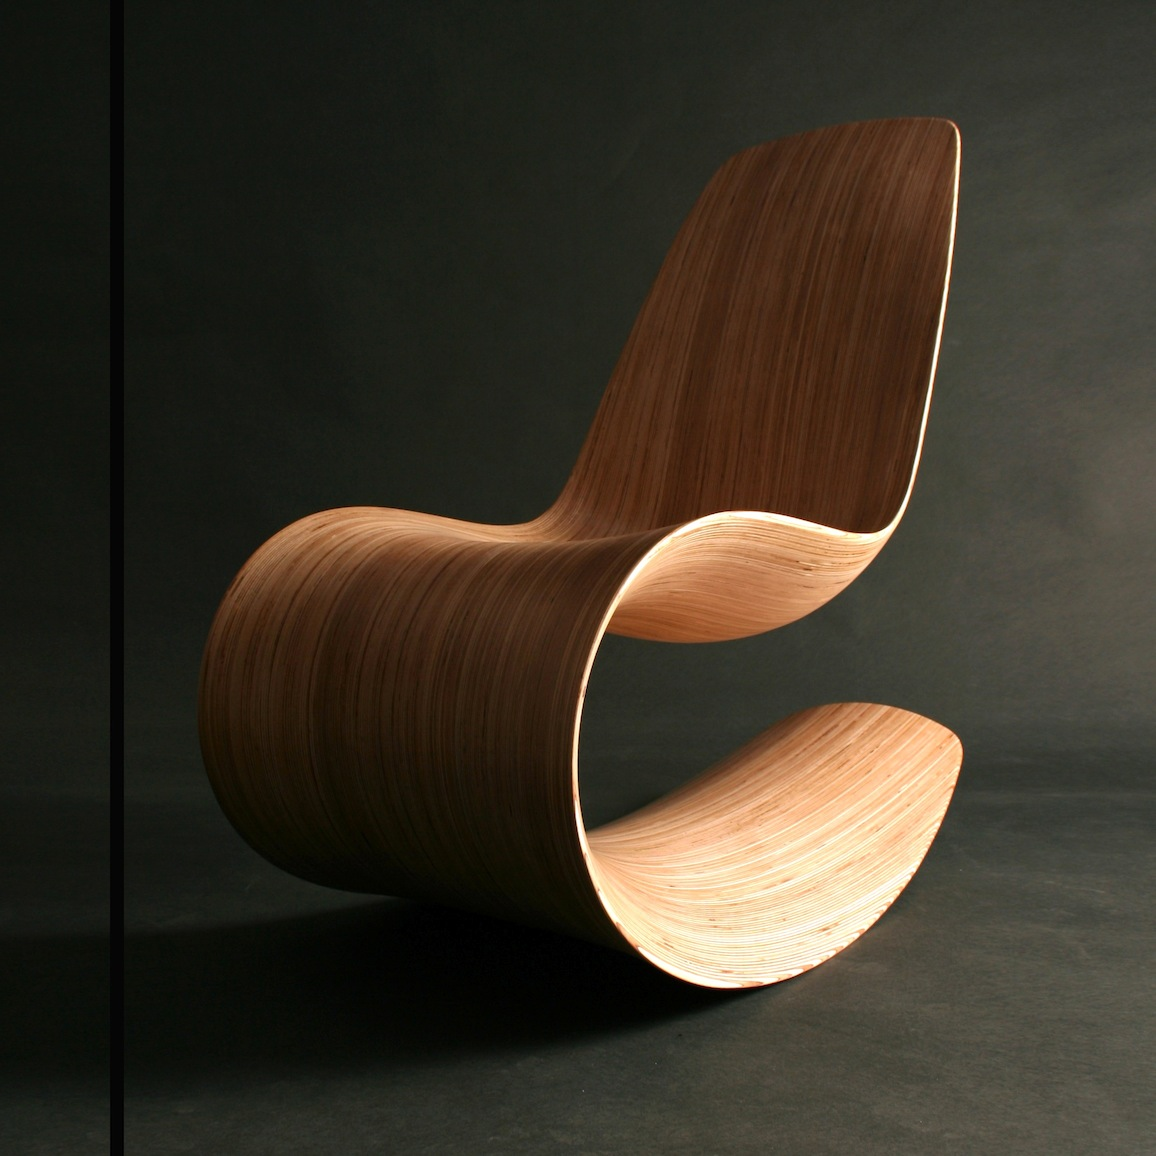 Savannah Rocker Wooden Rocking Chair ODEChair Jolyon Yates